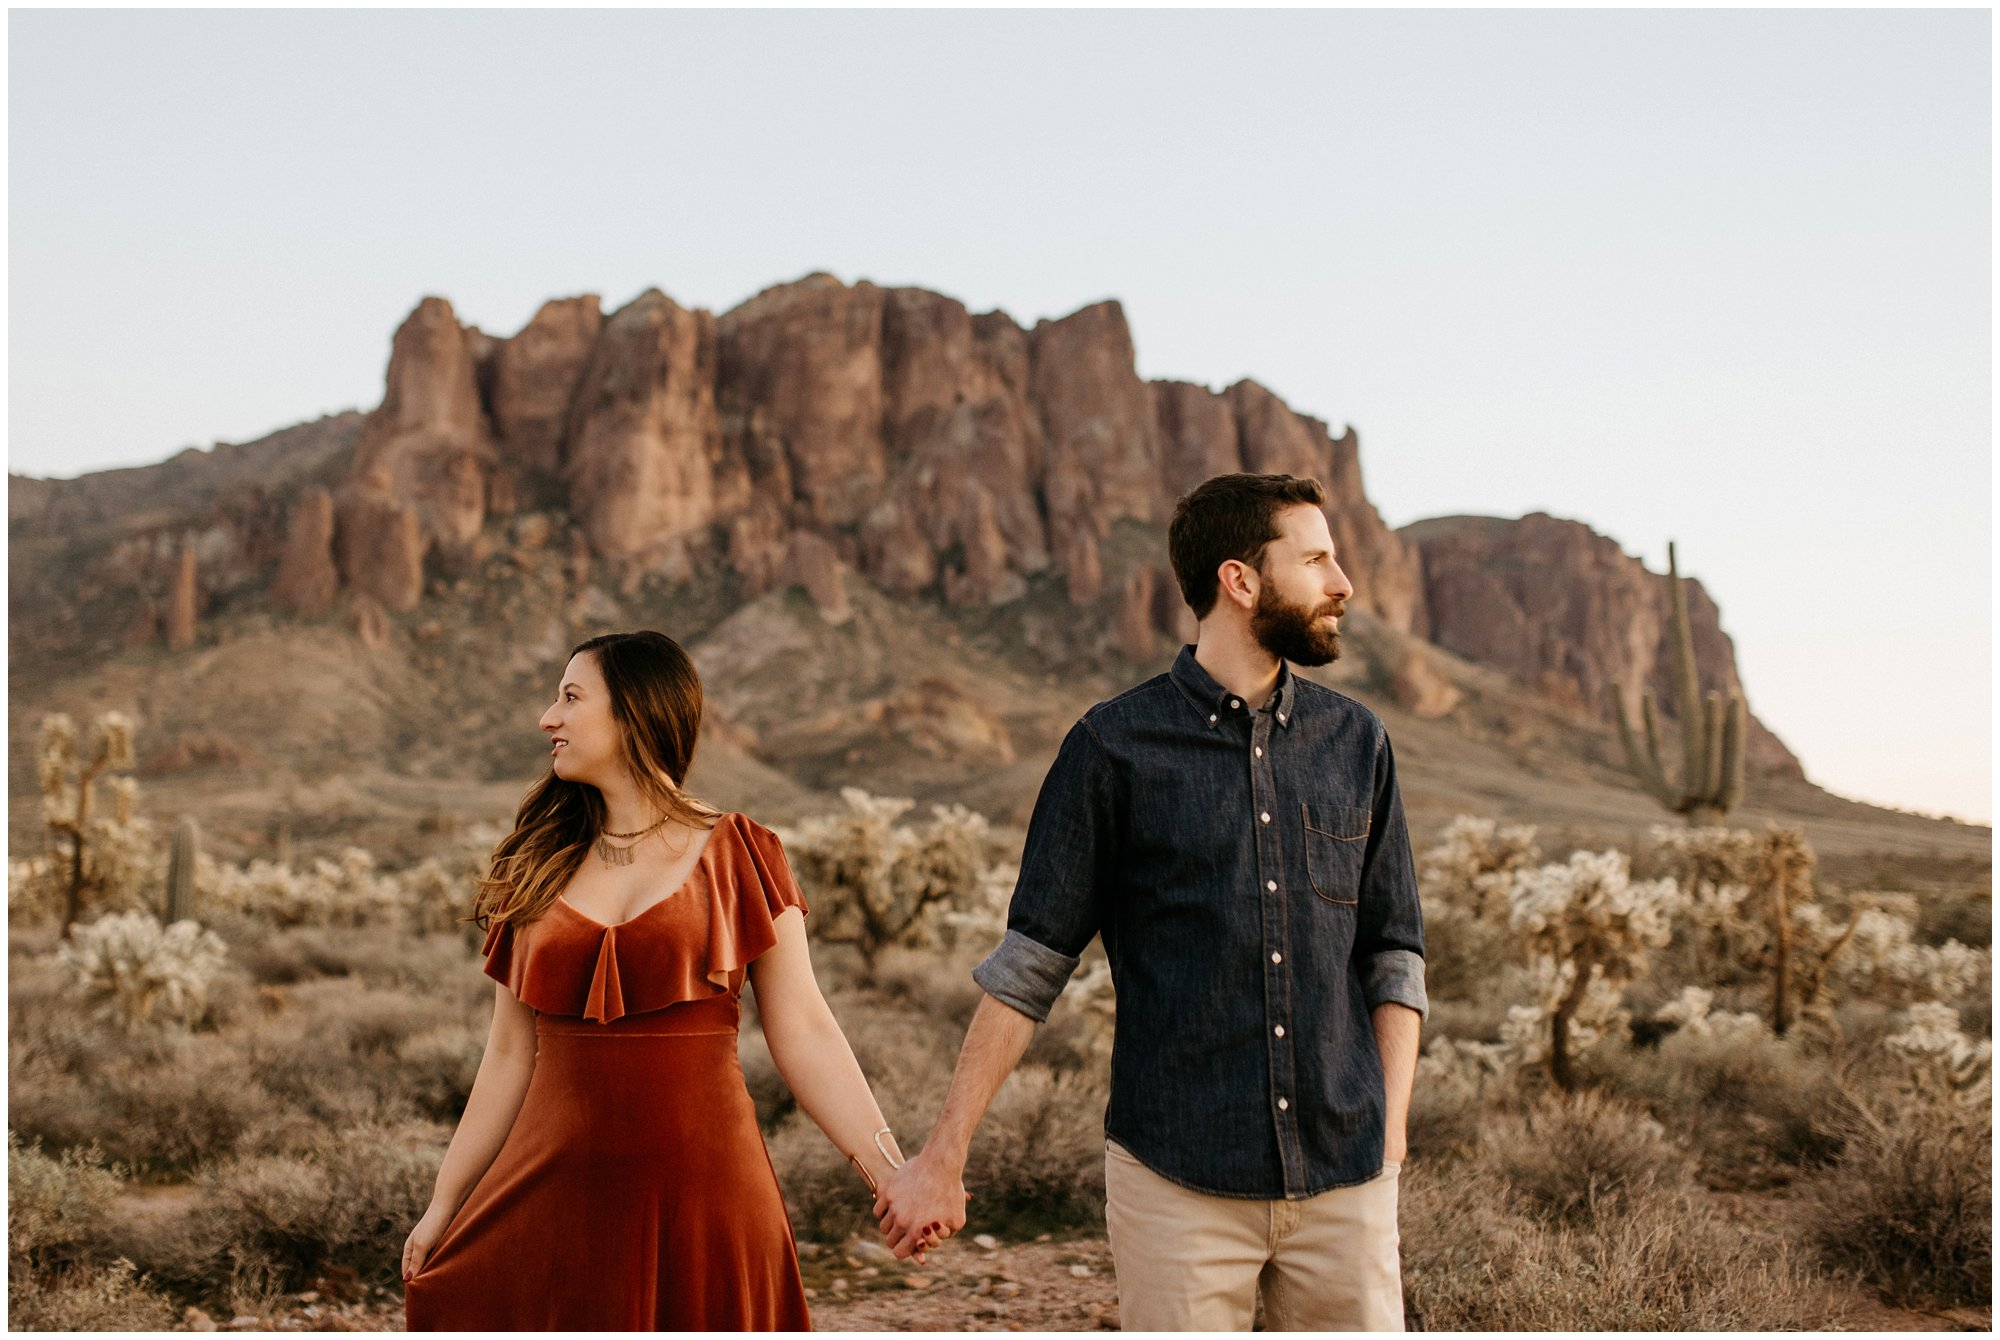 Arizona Desert Engagement Session - Megan + Geno - Ashtyn Nicole Photo_0033.jpg